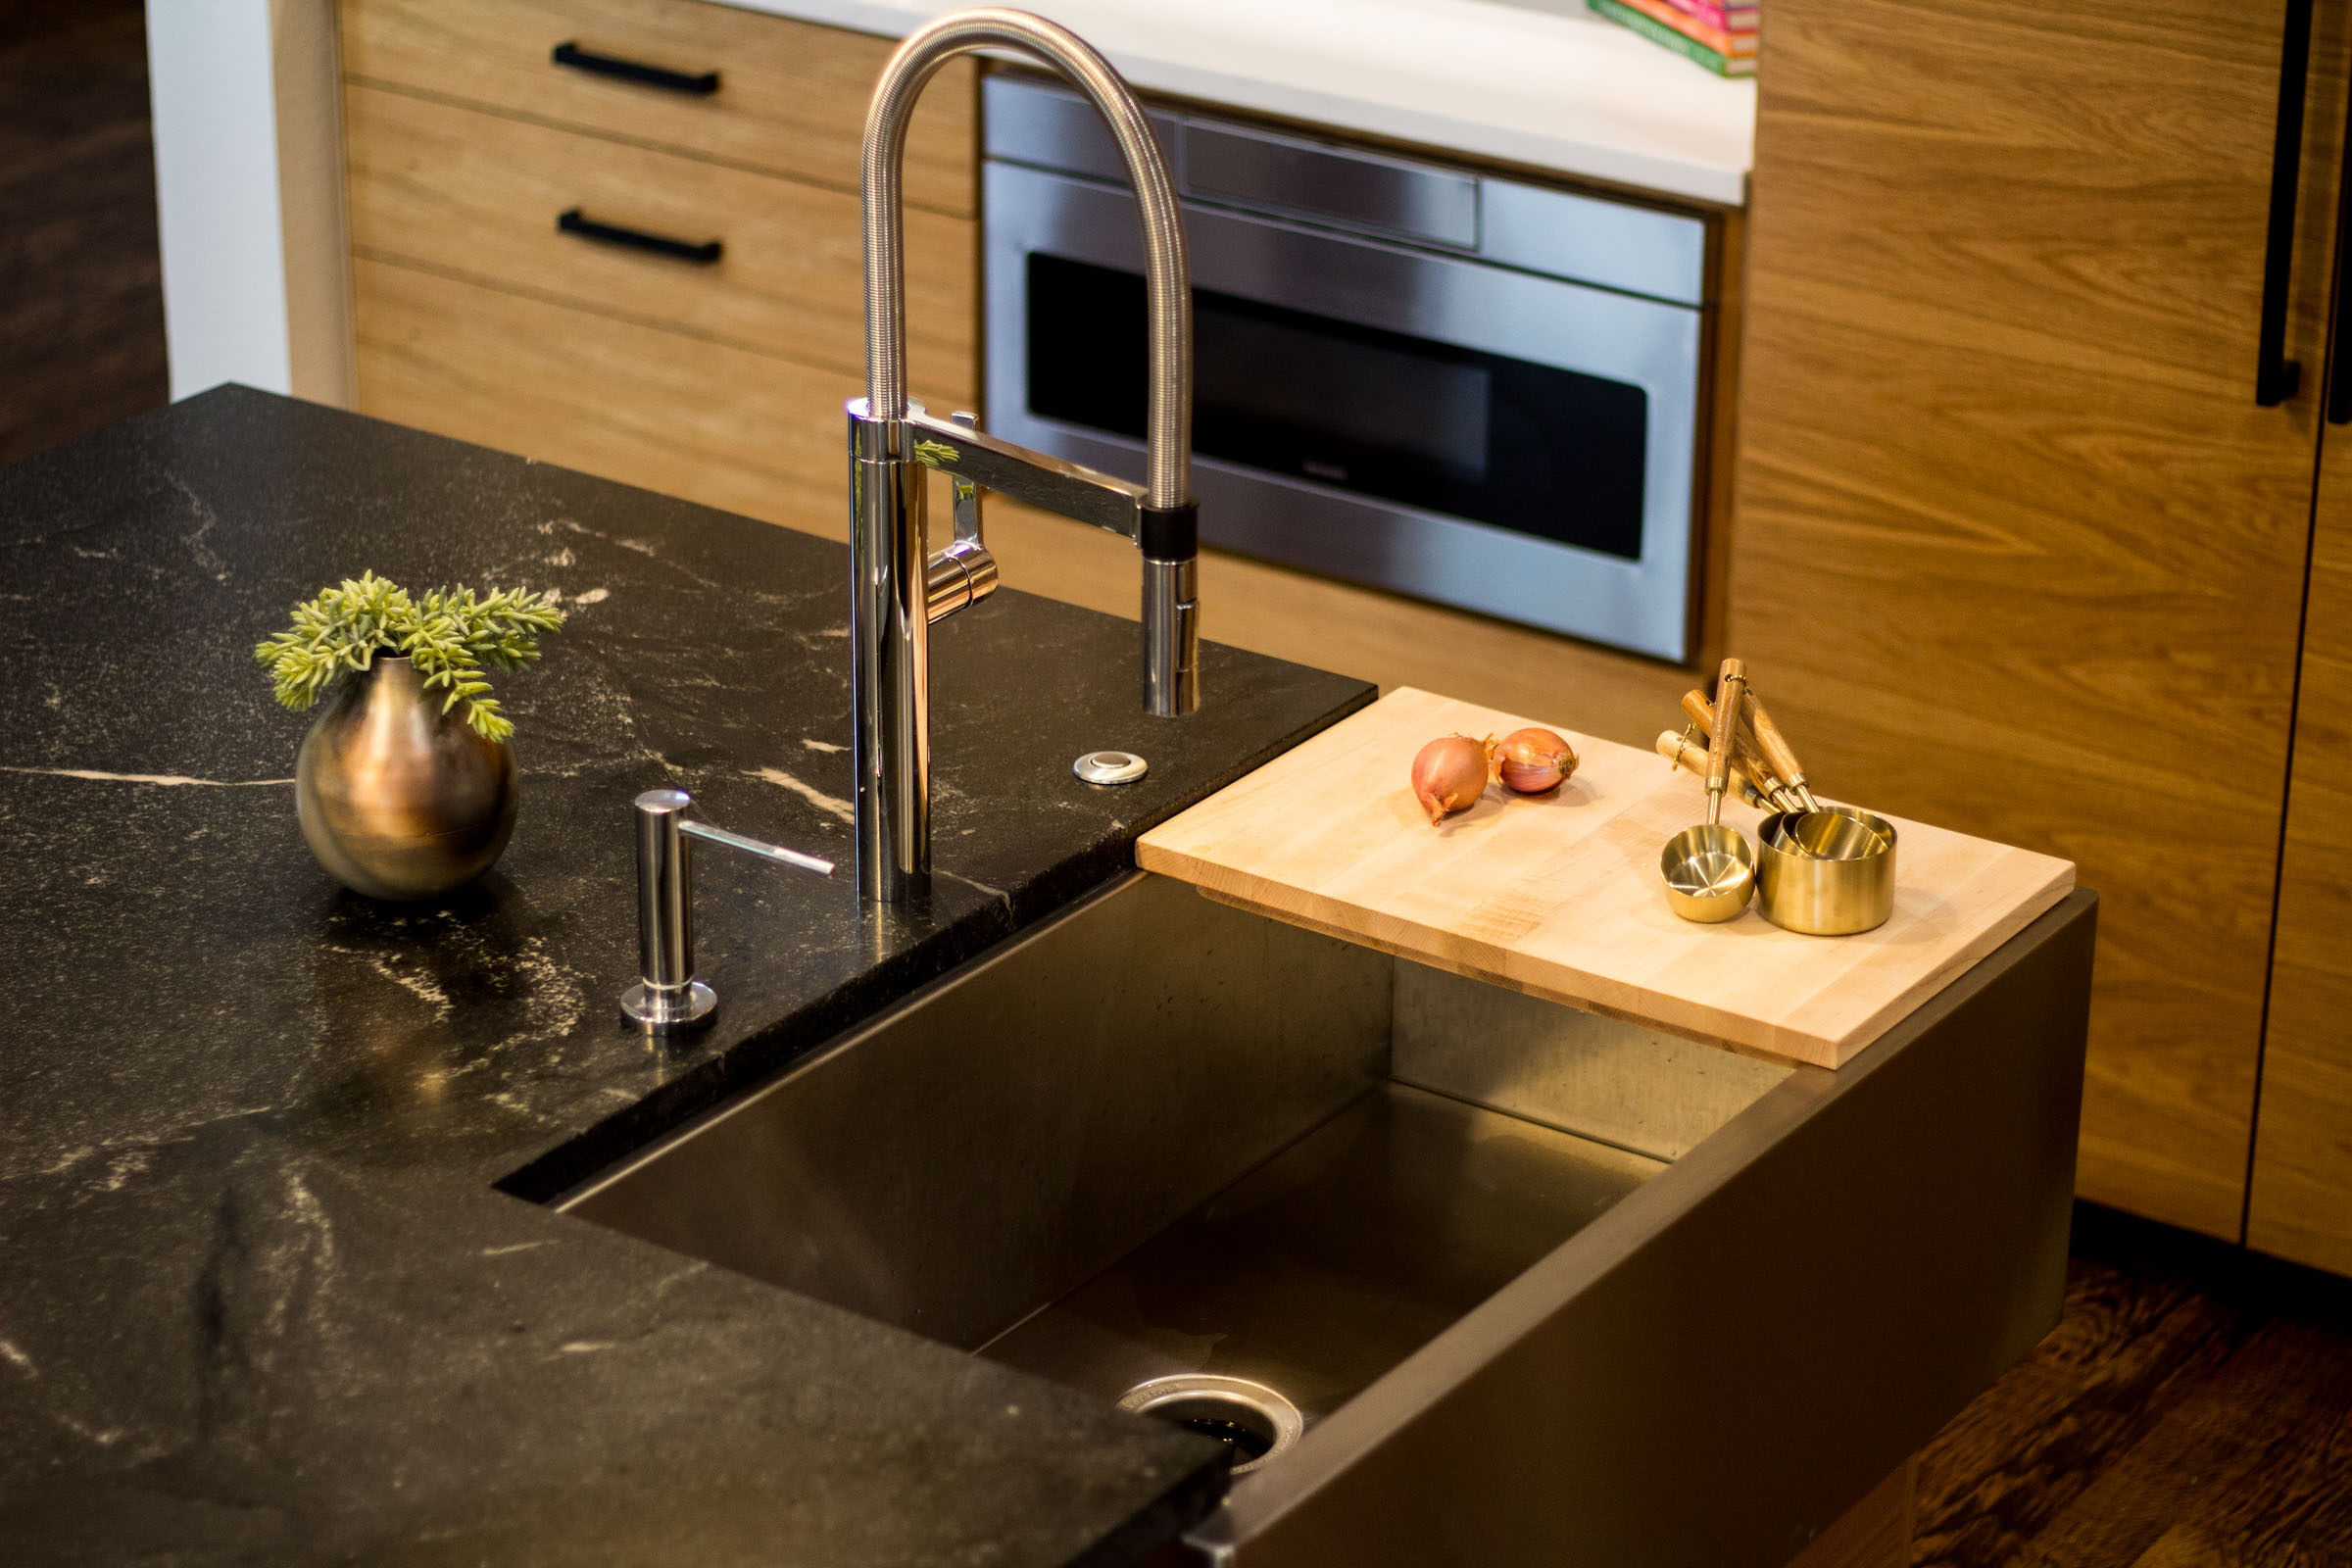 Black granite counter top, stainless steel swan kitchen faucet, cutting board onions and gold measuring cups with wooden handles.